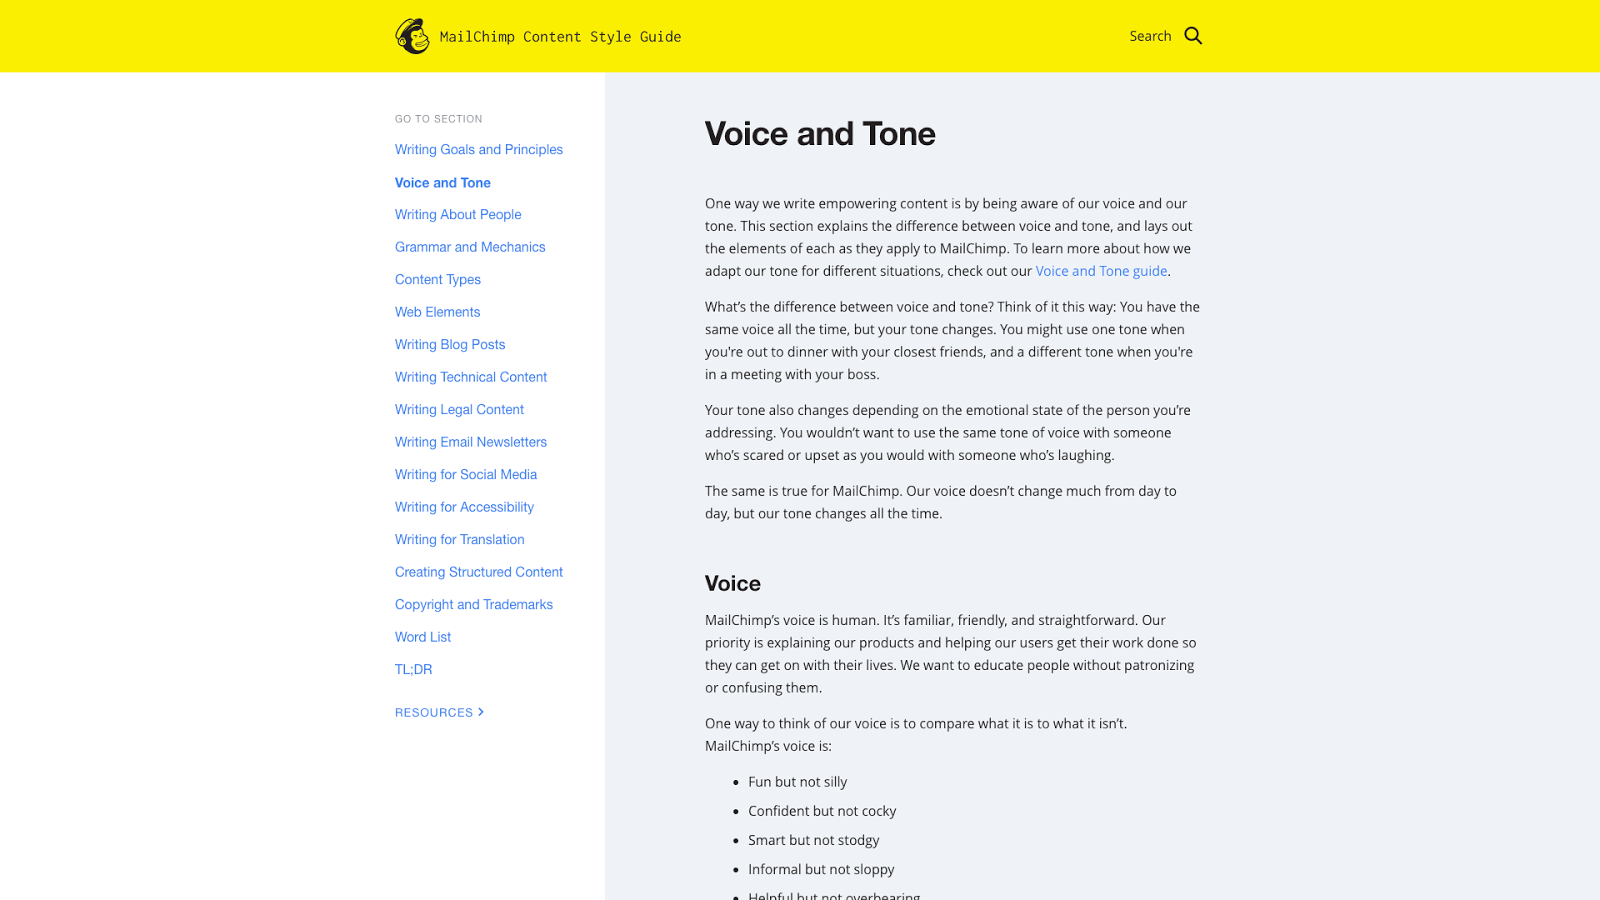 Mail Chimp's guidelines for voice and tone